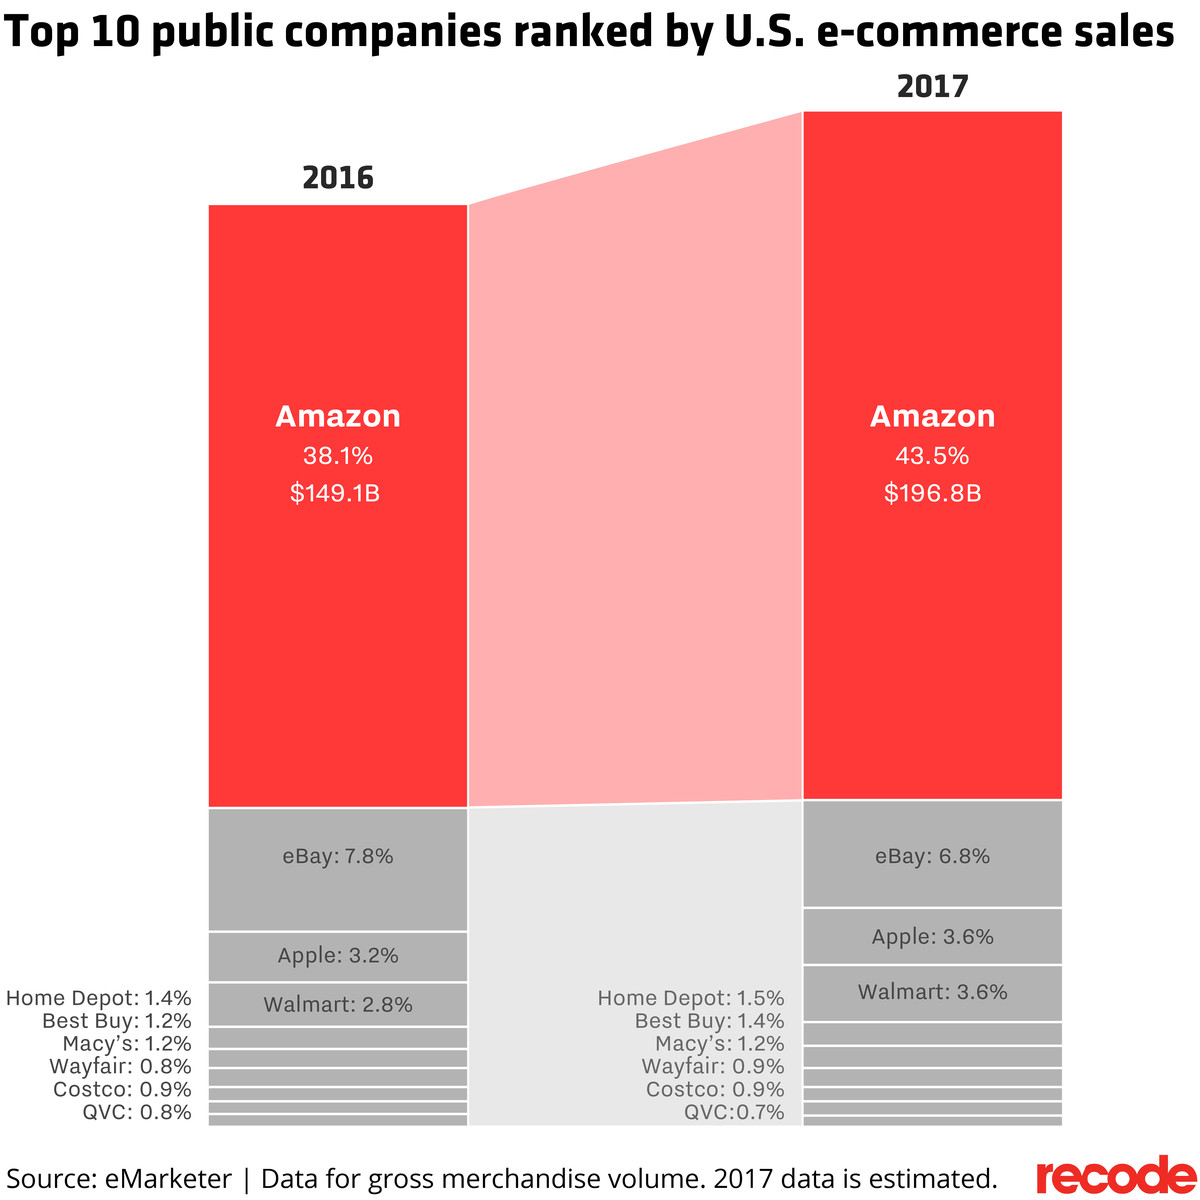 Top 10 public companies ranked buy U.S. e-commerce sales